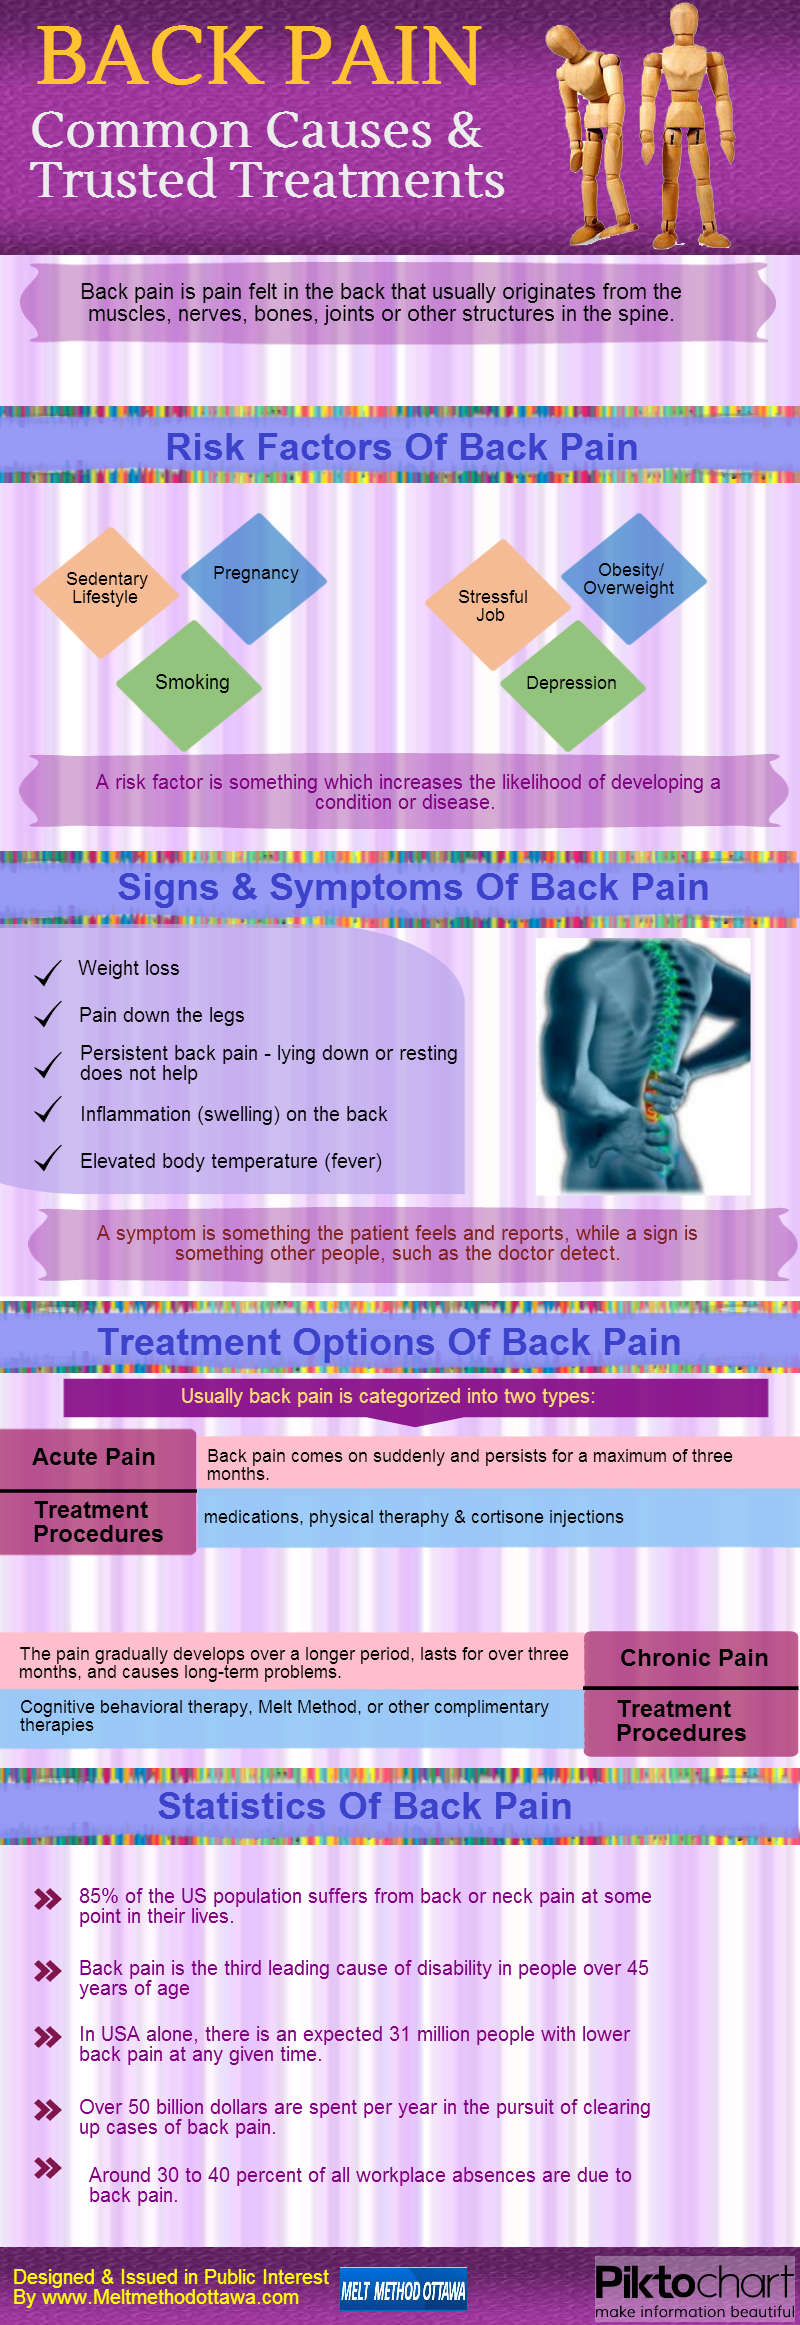 13. Back Pain Causes And Trusted Treatments